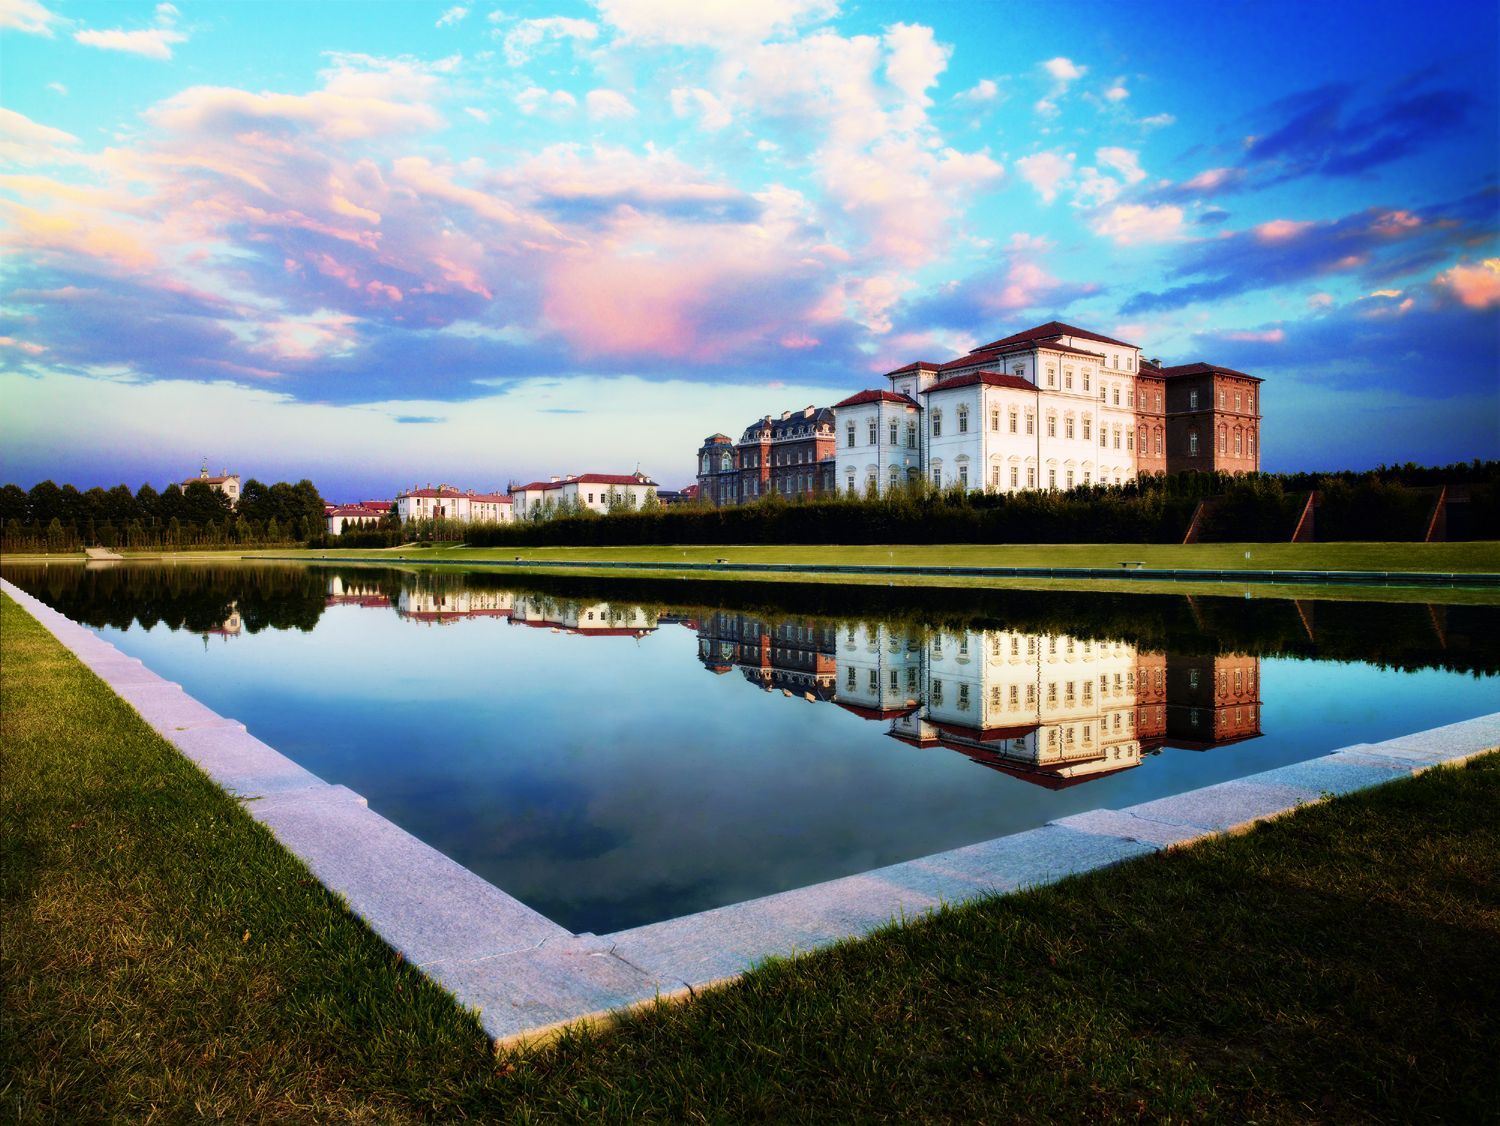 Reggia di Venaria - La Venaria Reale palace in Piedmont - palace with grounds and pond in front